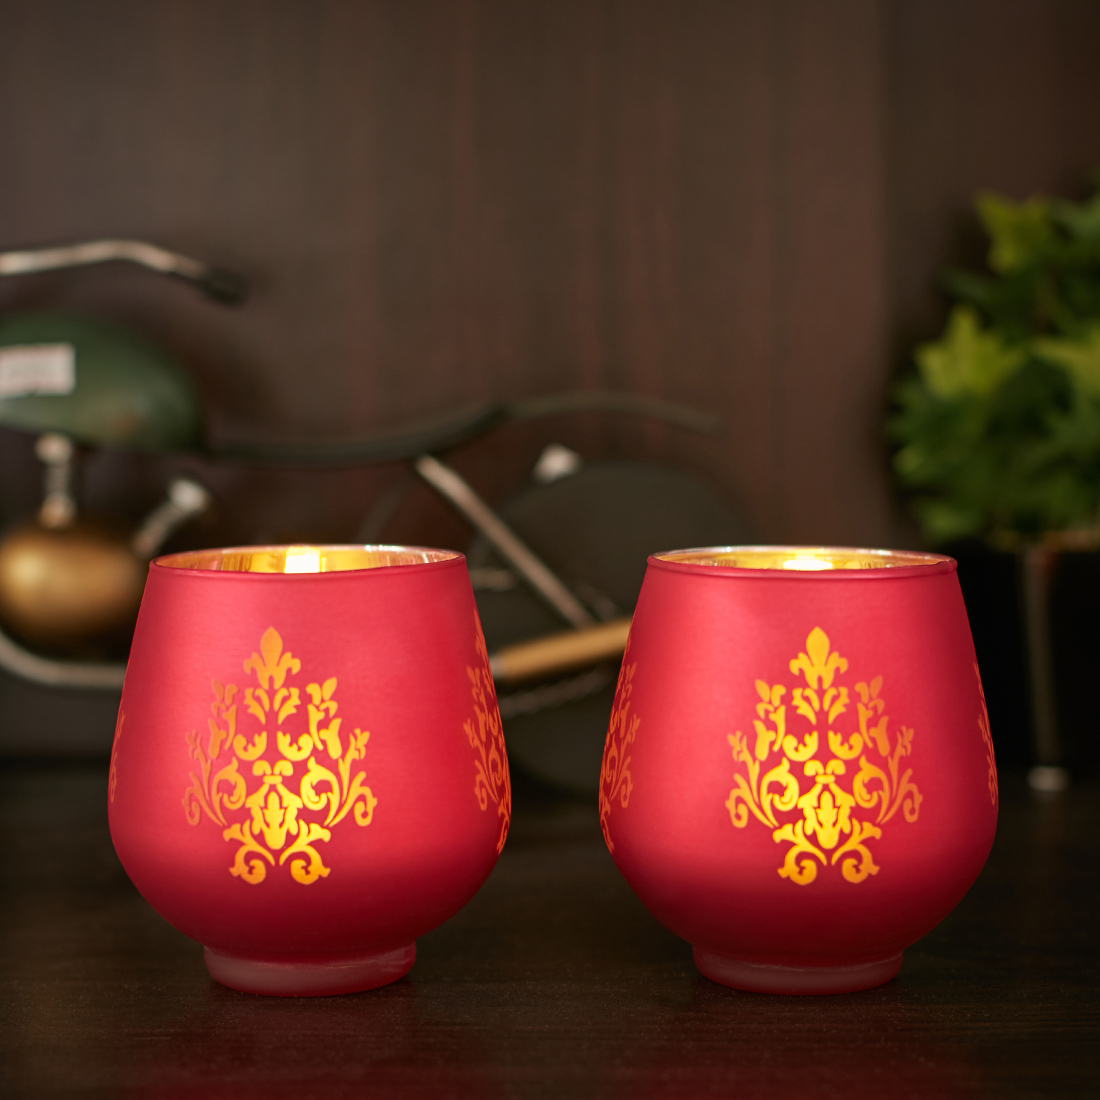 Zahara Set Of 2 Flower Etched Glass Candle Holders in RED Colour by Living Essence